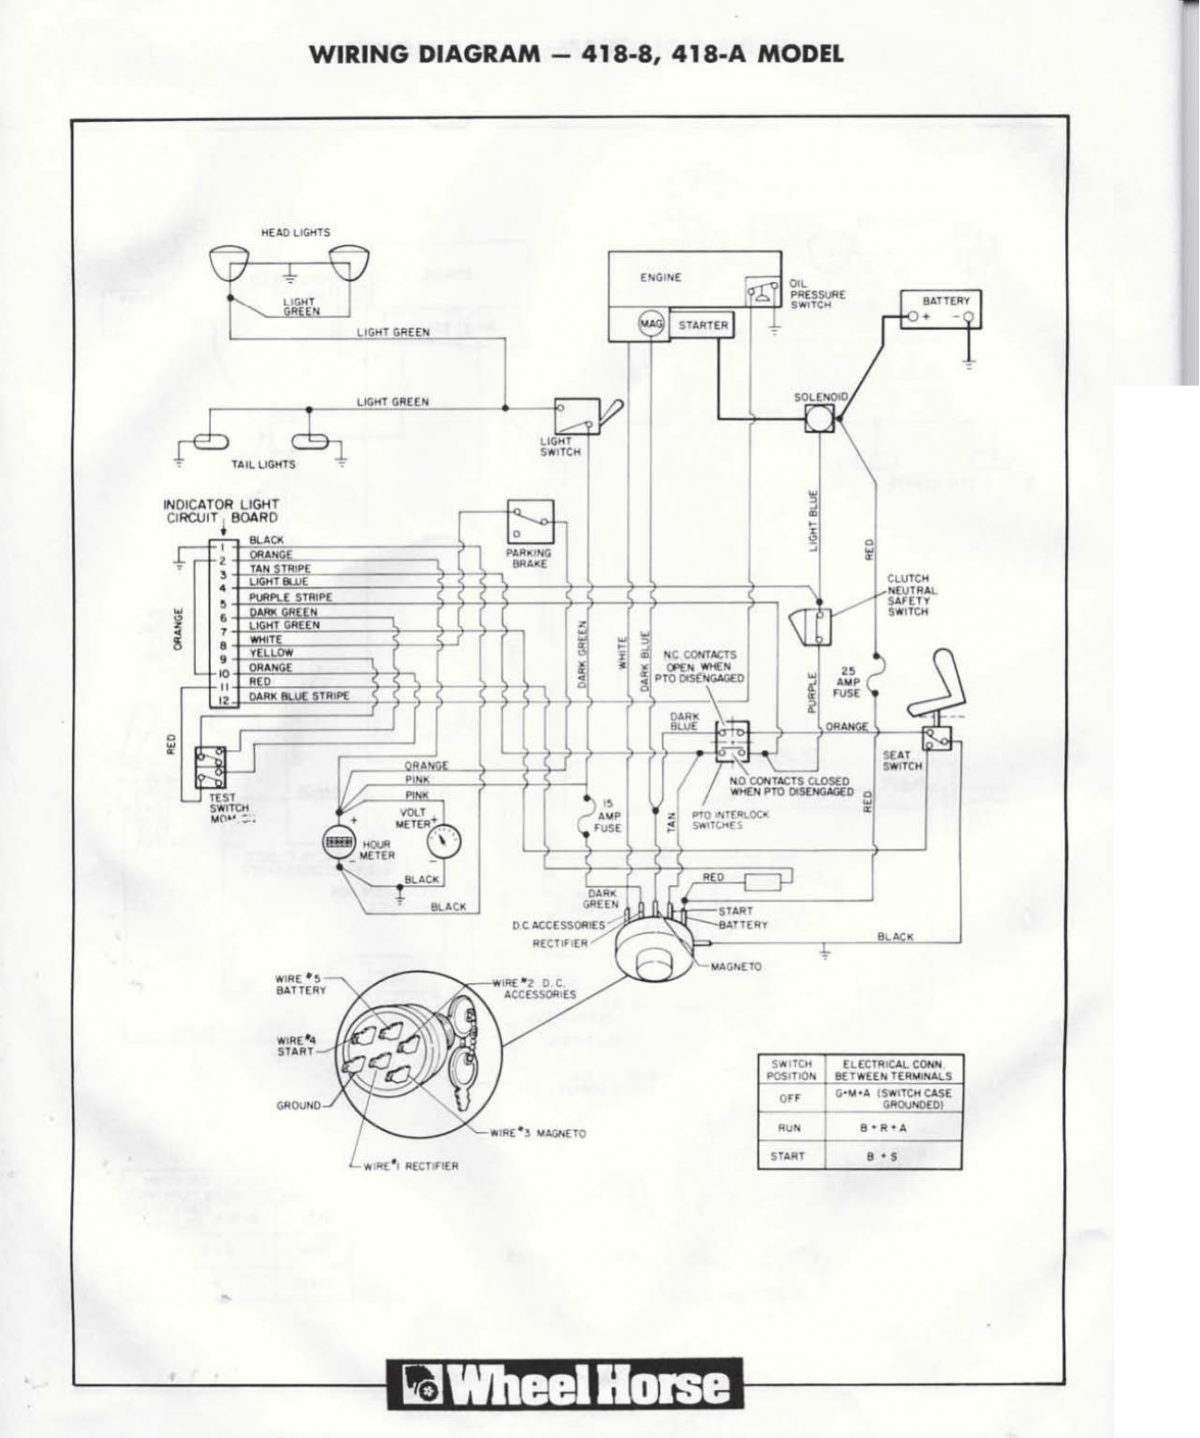 ZM_1090] Toro Wheel Horse Wiring Diagram On Toro Wheel Horse 8 25 Wiring  Download DiagramBios Xolia Jidig Barep Subd Bepta Mohammedshrine Librar Wiring 101